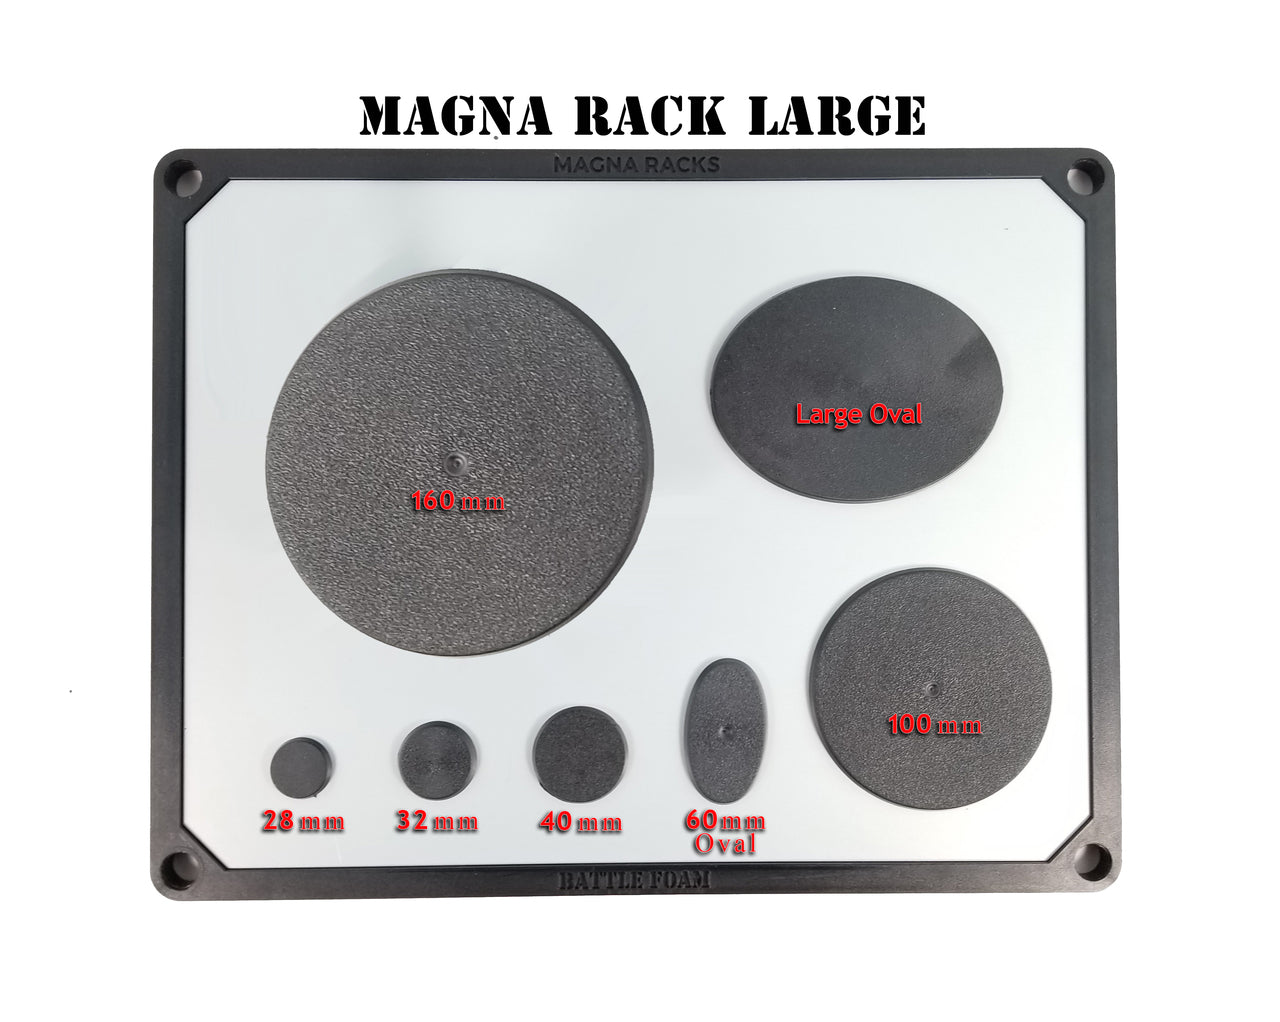 Magna Rack Original Large Kit for the P.A.C.K. 720 | Cascade Games | New Zealand